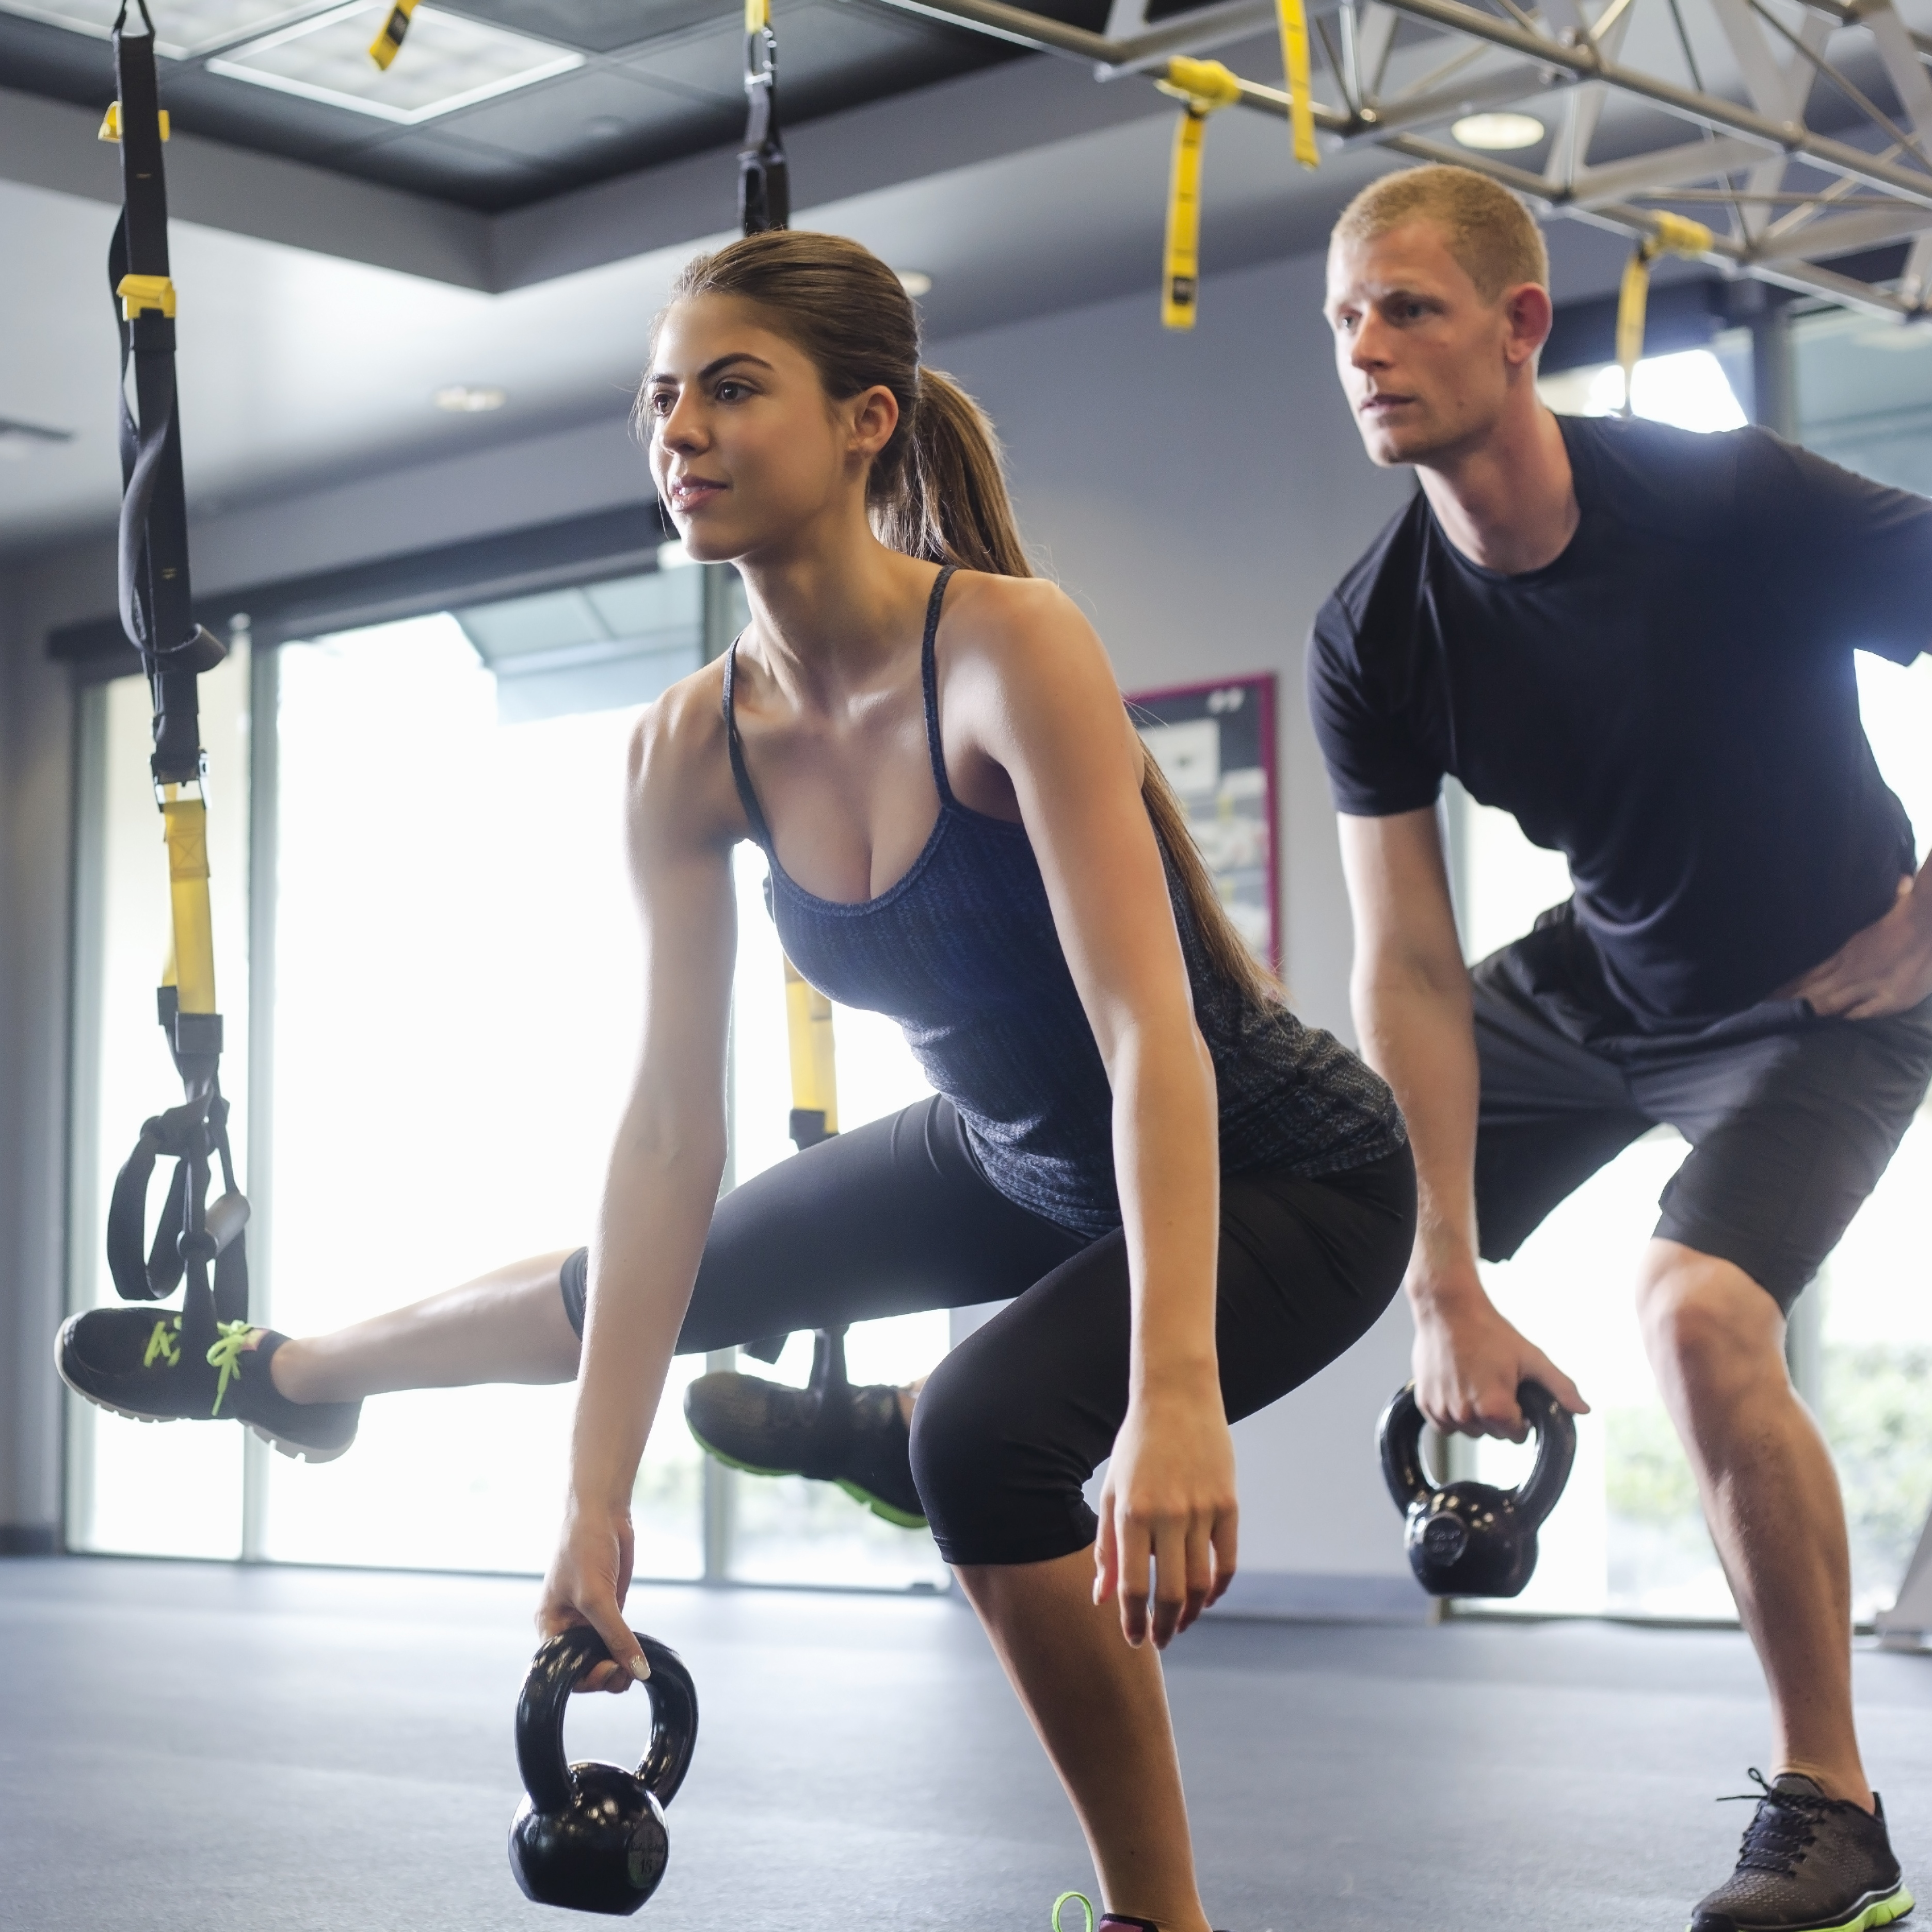 Working Out: Check Out Why Exercise For Better Sex And Steamy Moves